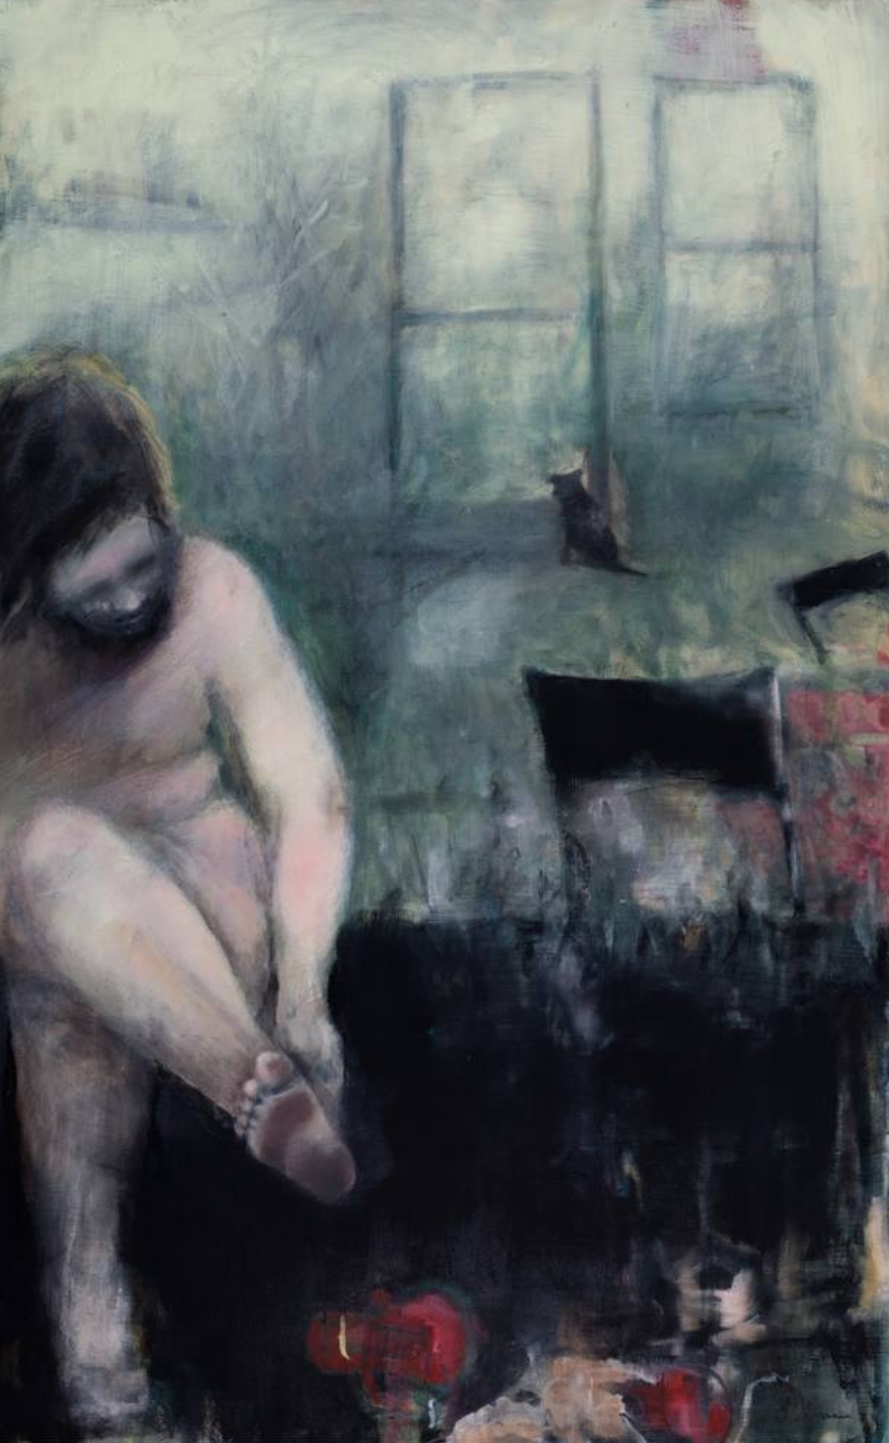 A blurry painting of a woman changing in what appears to be a locker room.